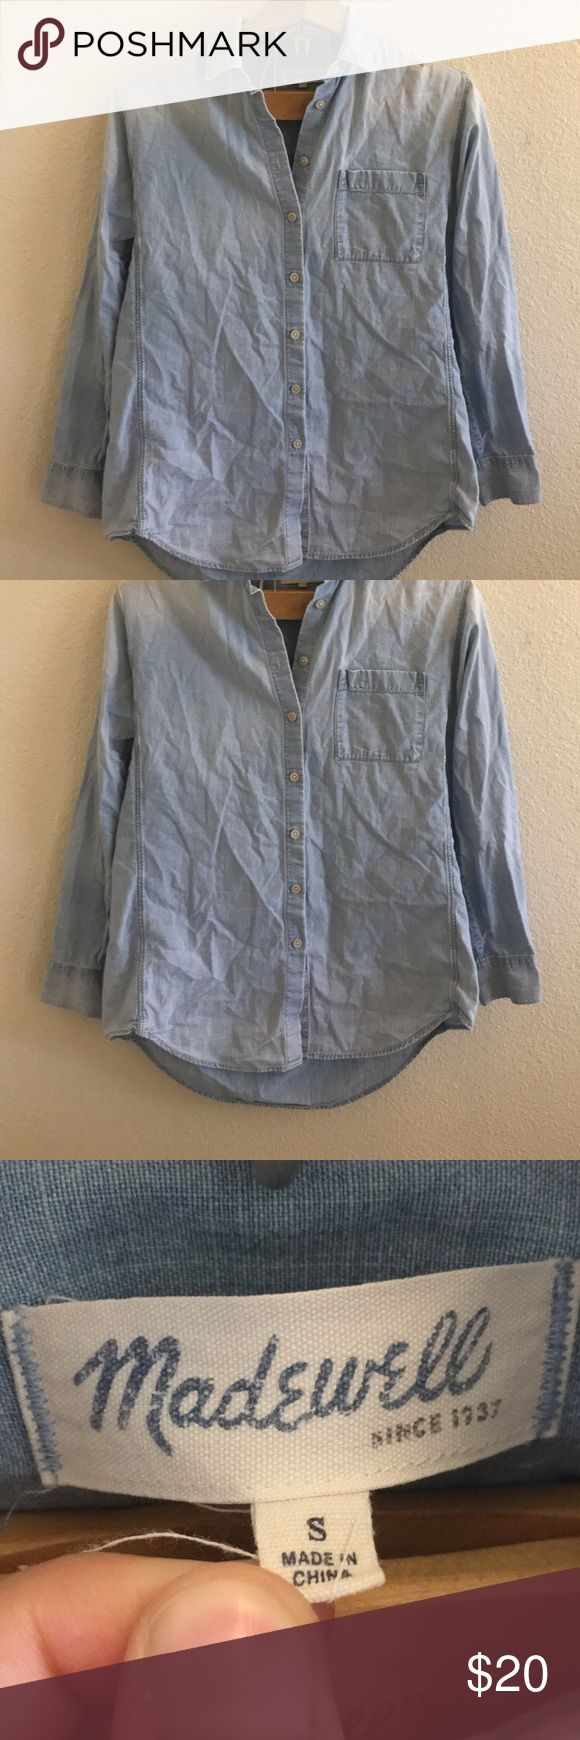 Madewell Chambray Top Size small light blue chambray top by Madewell. Slightly longer in the back than in the front. Button up front, super soft material. Small hole on the shoulder as pictured. Willing to negotiate! I ship daily - excluding Sundays and holidays - and I store items in a smoke free, pet free environment. Open to offers; bundles discounted! Madewell Tops Button Down Shirts